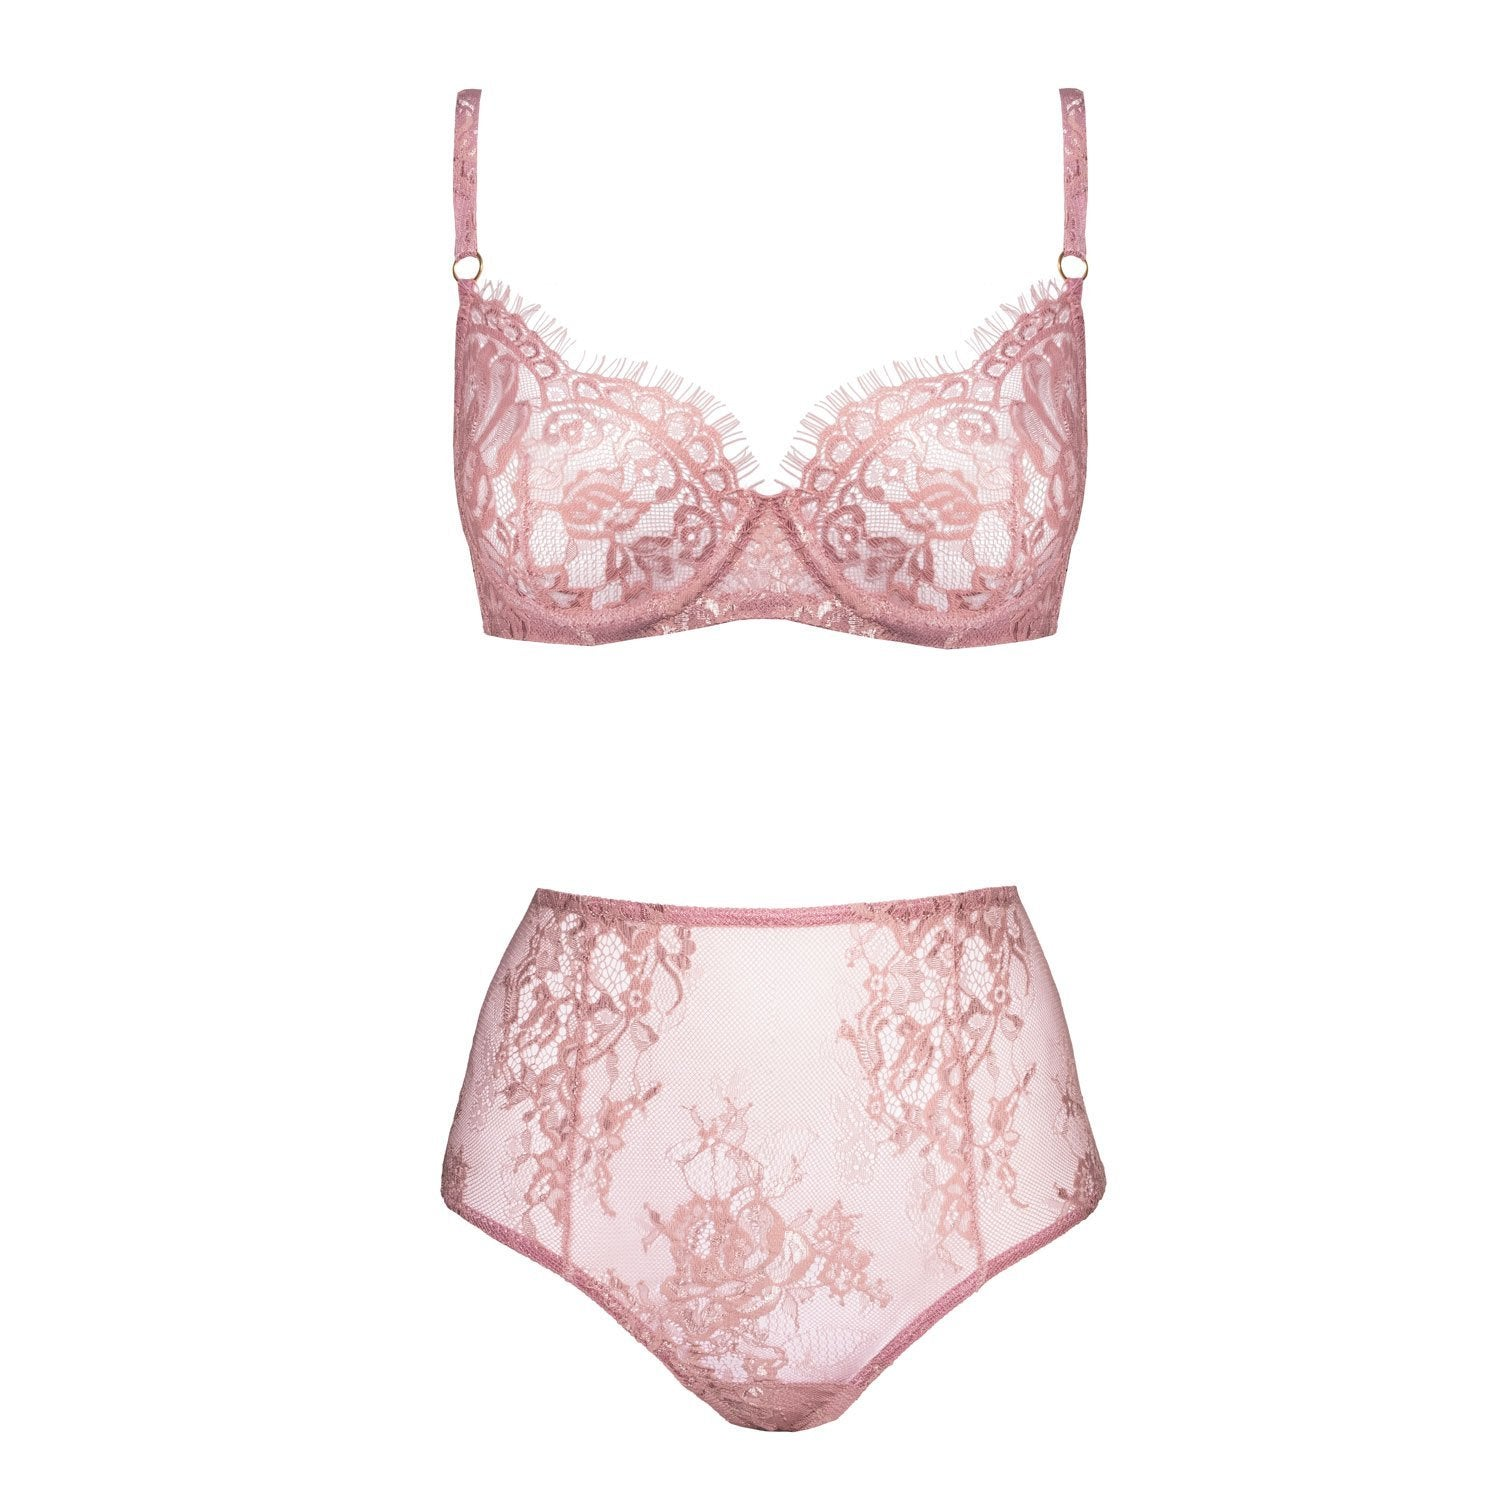 Designer lingerie set, Keosme, lace, openwork, cups without foam rubber, soft, high panties Brazilian, soft, pink, tender. ???????????? ???????? ?????, Keosme, ?????????, ???????, ????? ??? ????????, ??????, ??????? ??????? ??????????, ??????, ???????, ??????, ?????? ???????????, ??? ????????, ?? ?????????, ???????????? ?????, ??????? ??????? ??????????, ??????? ?????, ??????? ???????, ????? ????????????, ????? ?? ?????